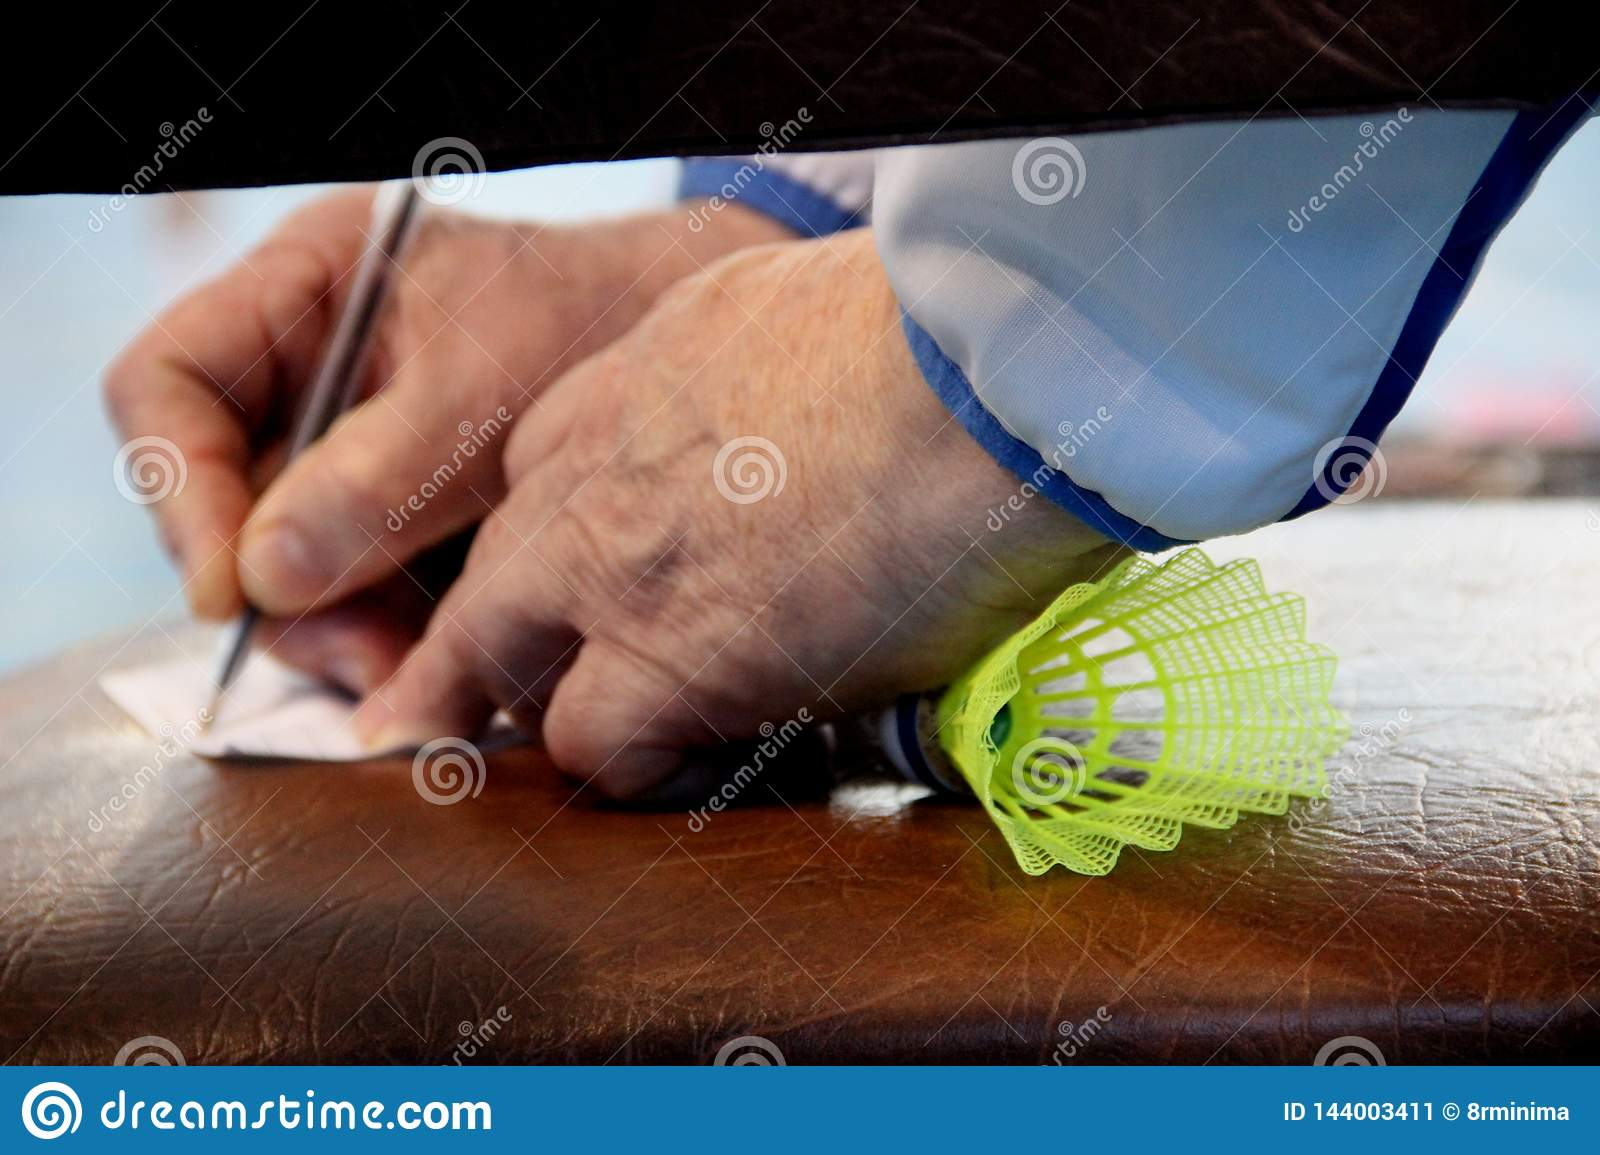 an older trainer takes notes with a shuttlecock for badminton in his fist, framing close-up